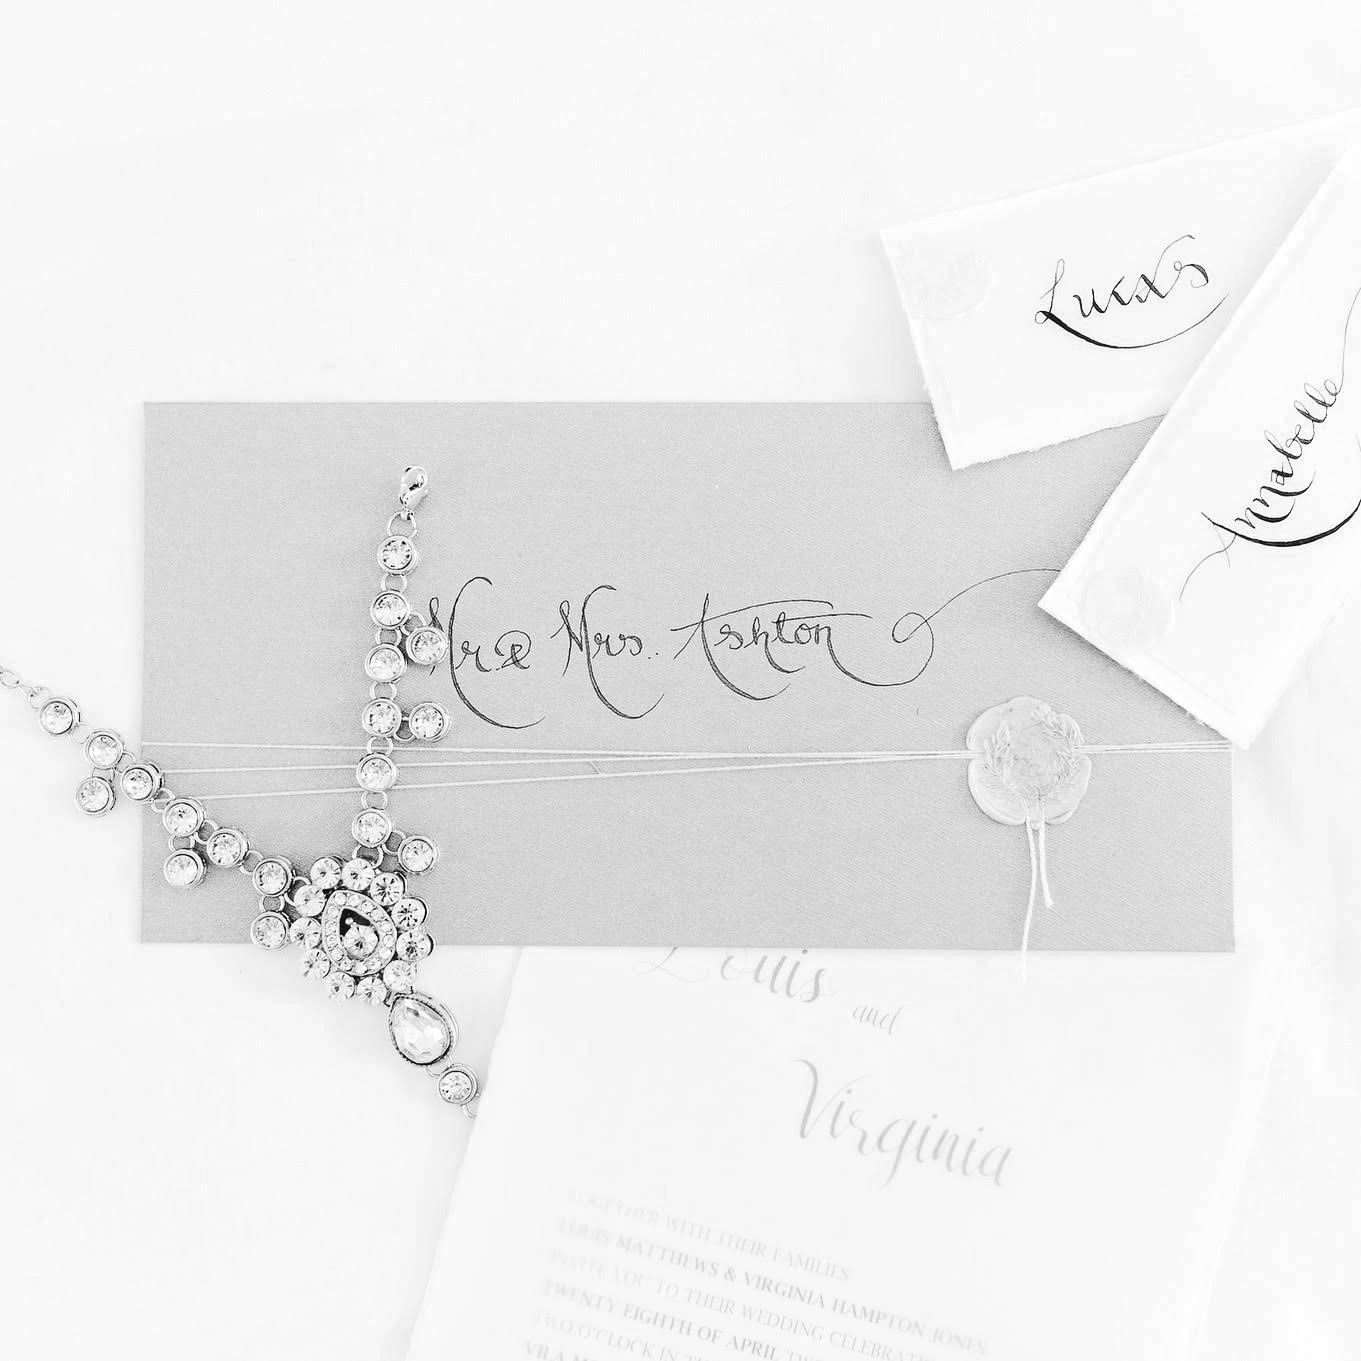 julie_nicholls_weddings_design_styling_events_luxury_planner_dorset_hampshire_london_stationery-03BW.jpg